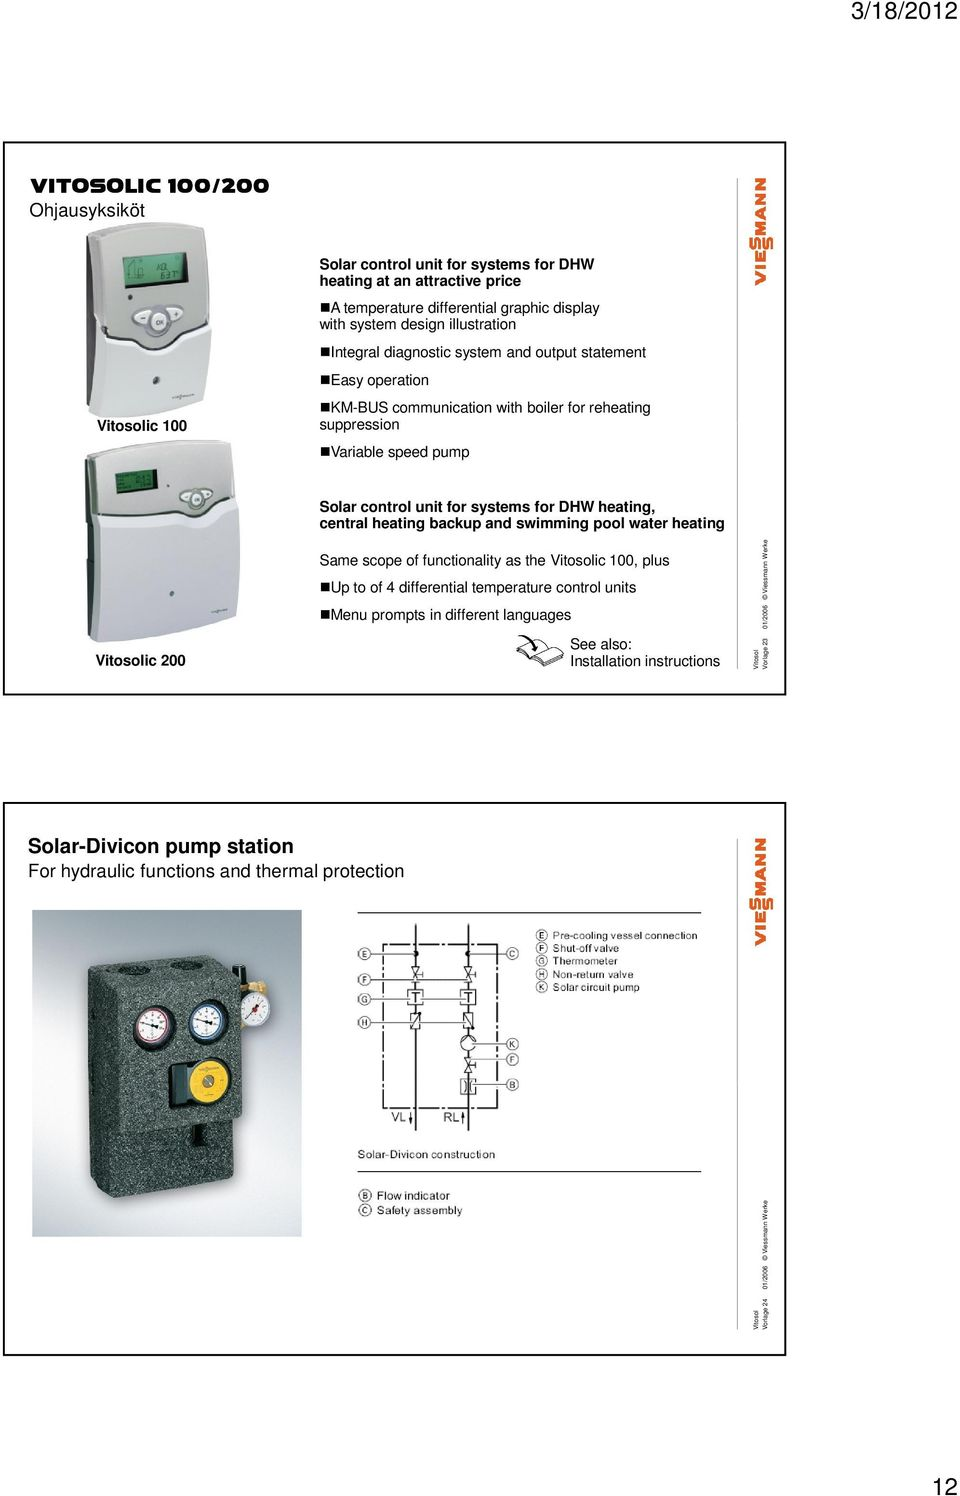 heating, central heating backup and swimming pool water heating ic 200 Same scope of functionality as the ic 100, plus Up to of 4 differential temperature control units Menu prompts in